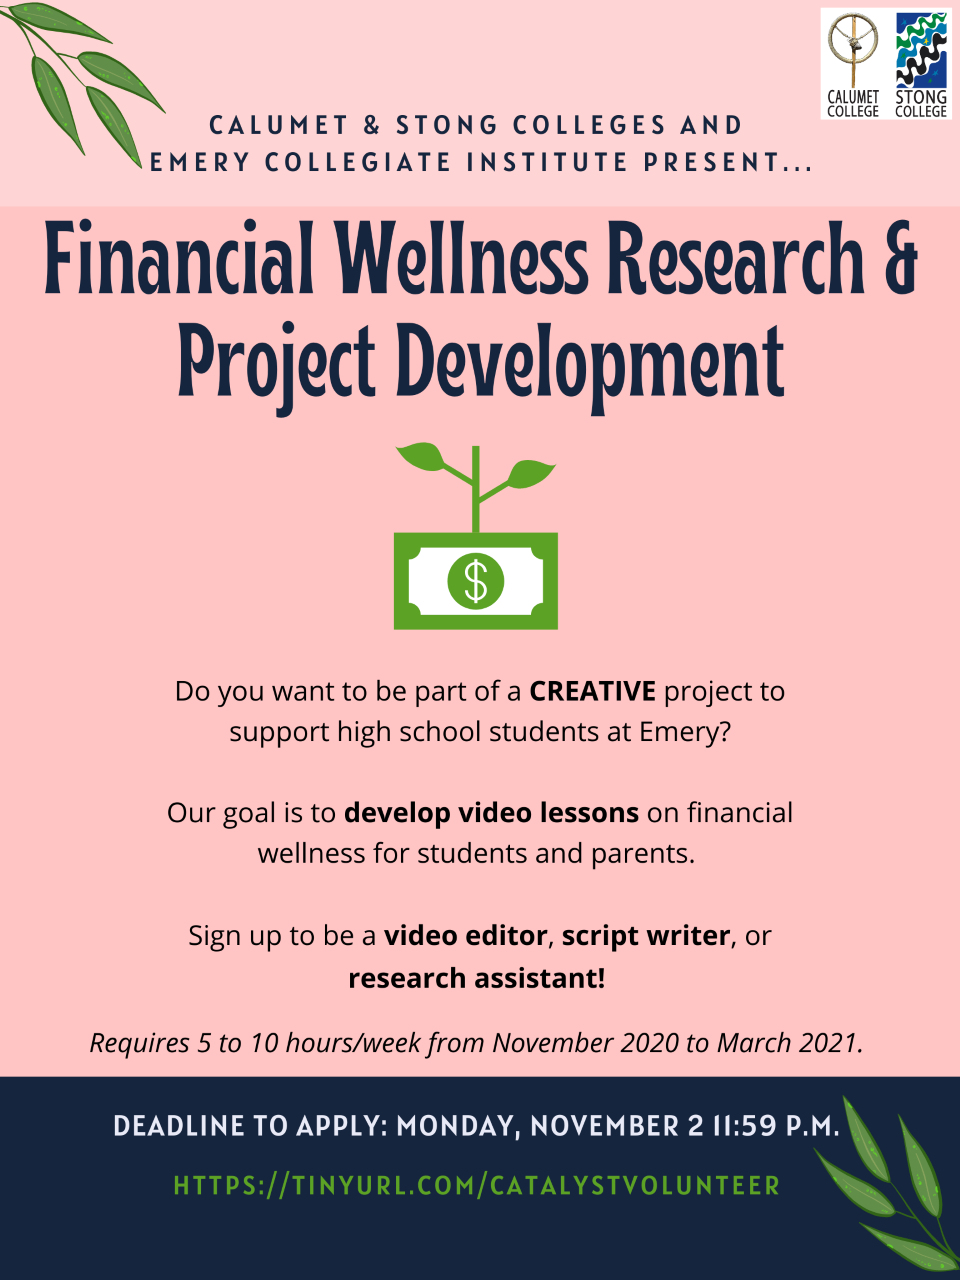 Financial Wellness Research and Project Development Opportunity Deadline